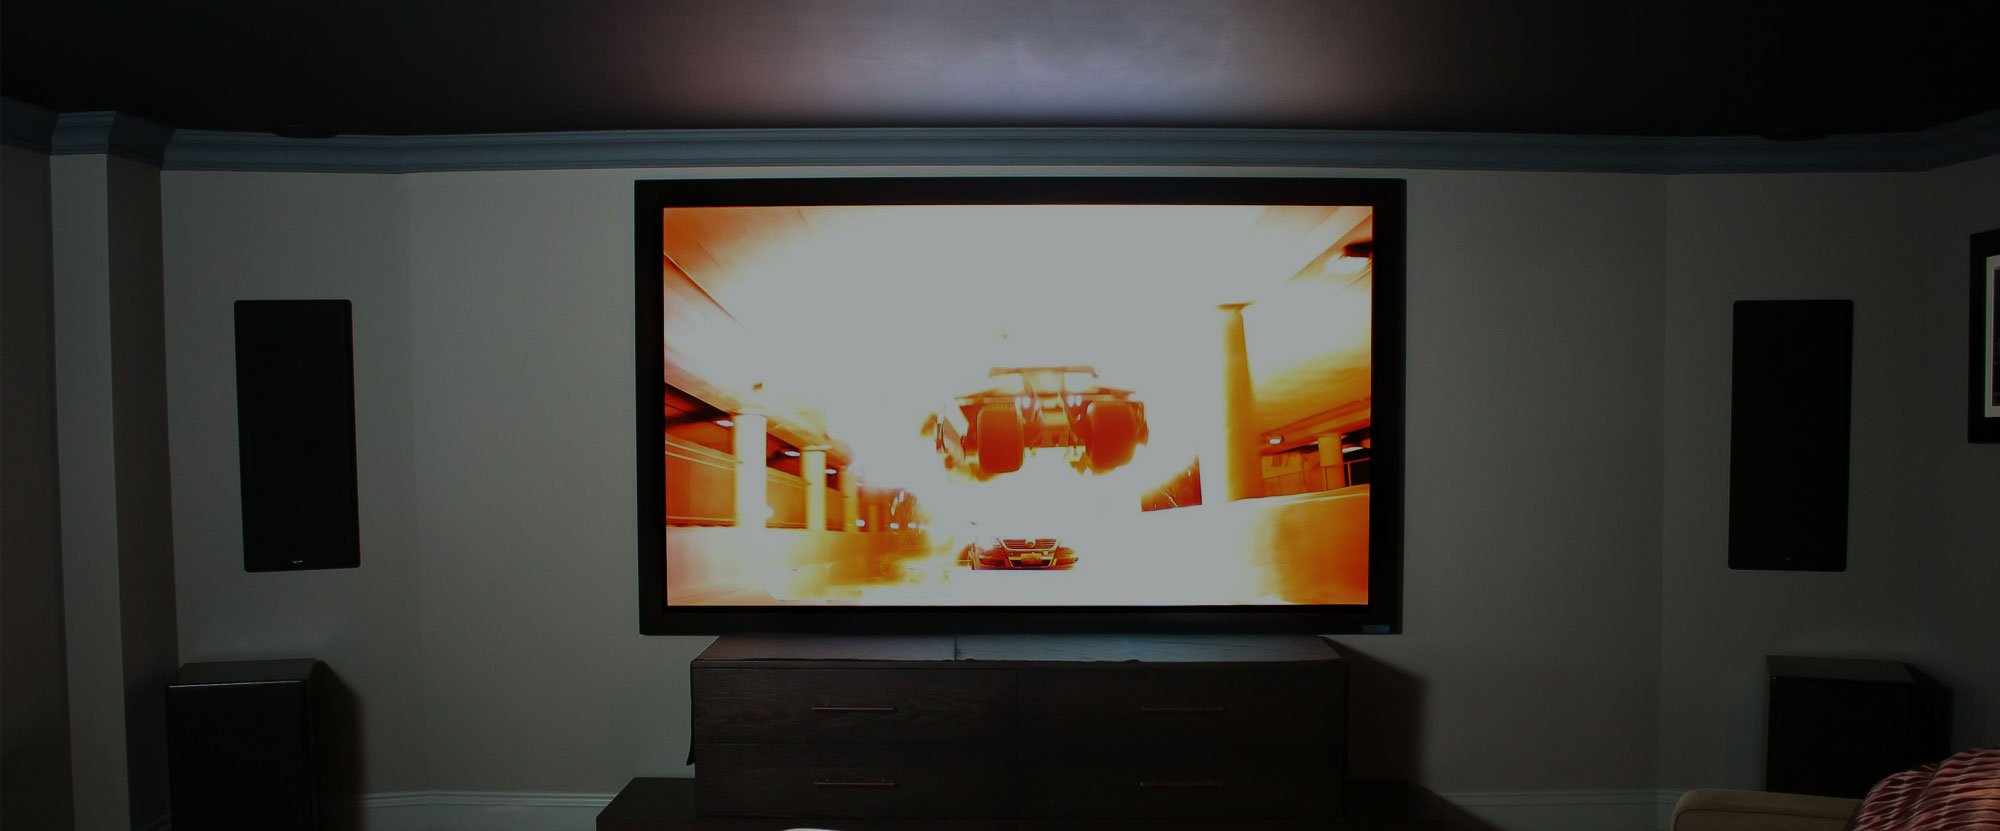 home-cinema-audio-visual